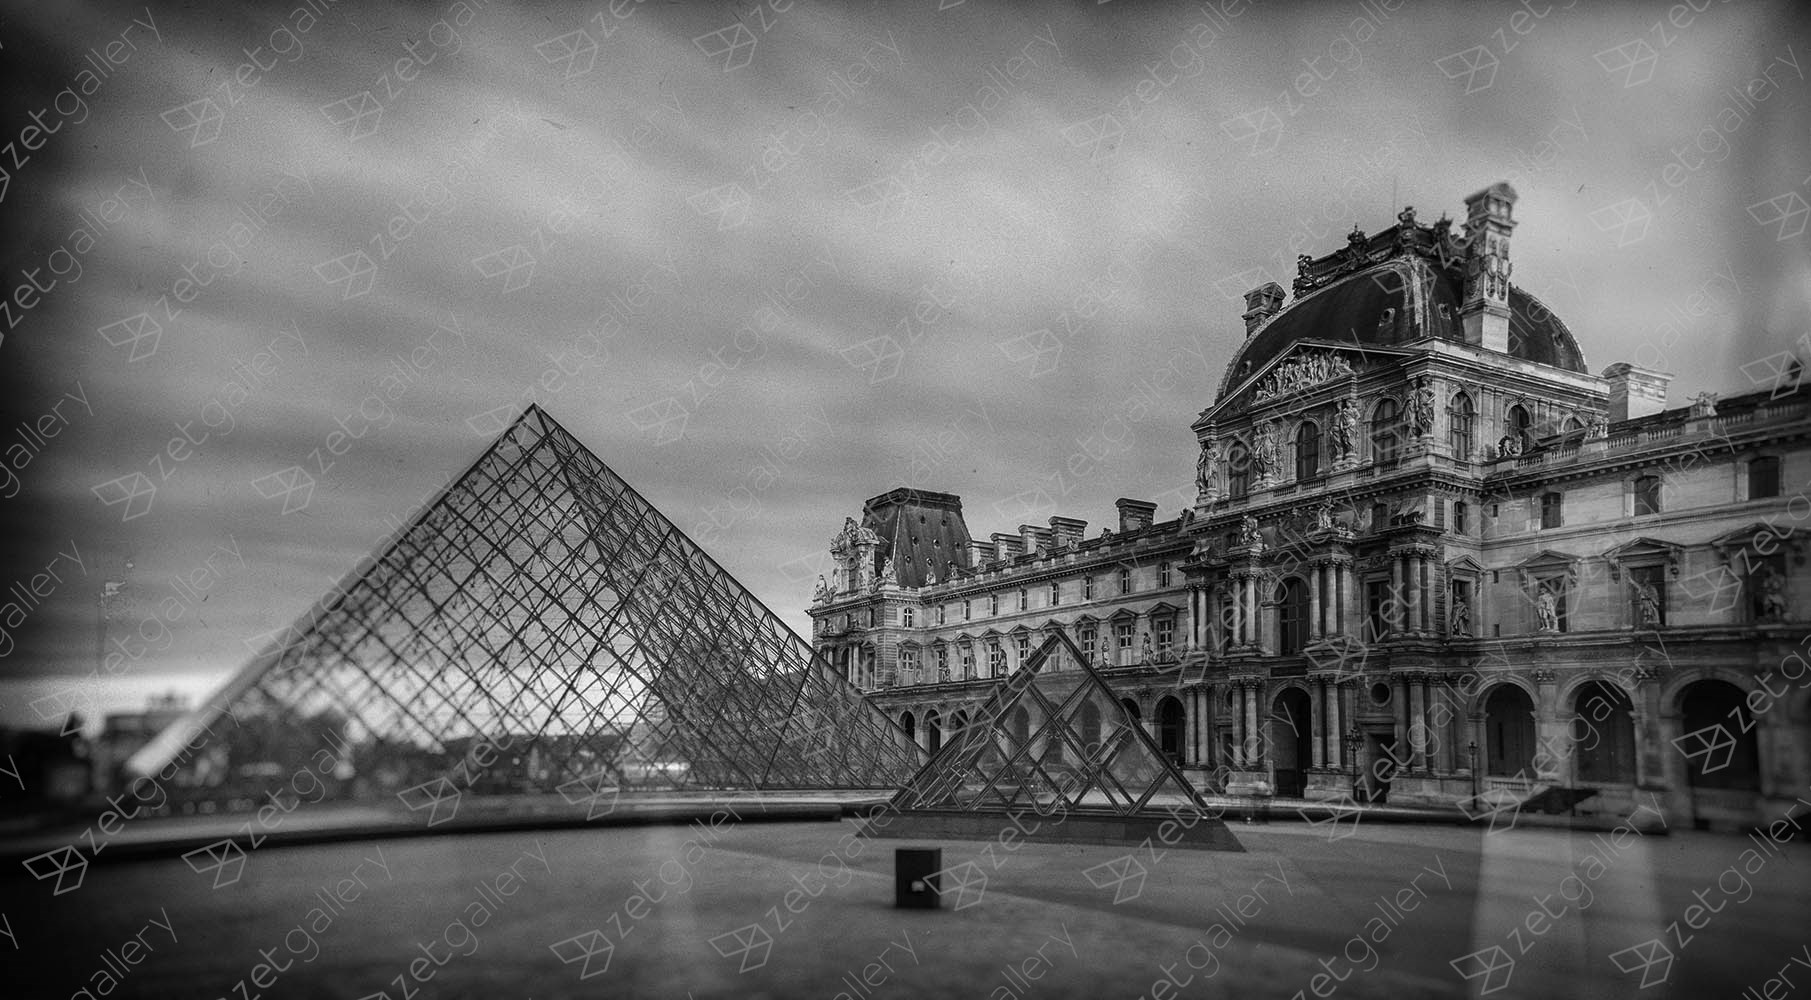 Old Paris, original Architecture Digital Photography by Ricardo BR